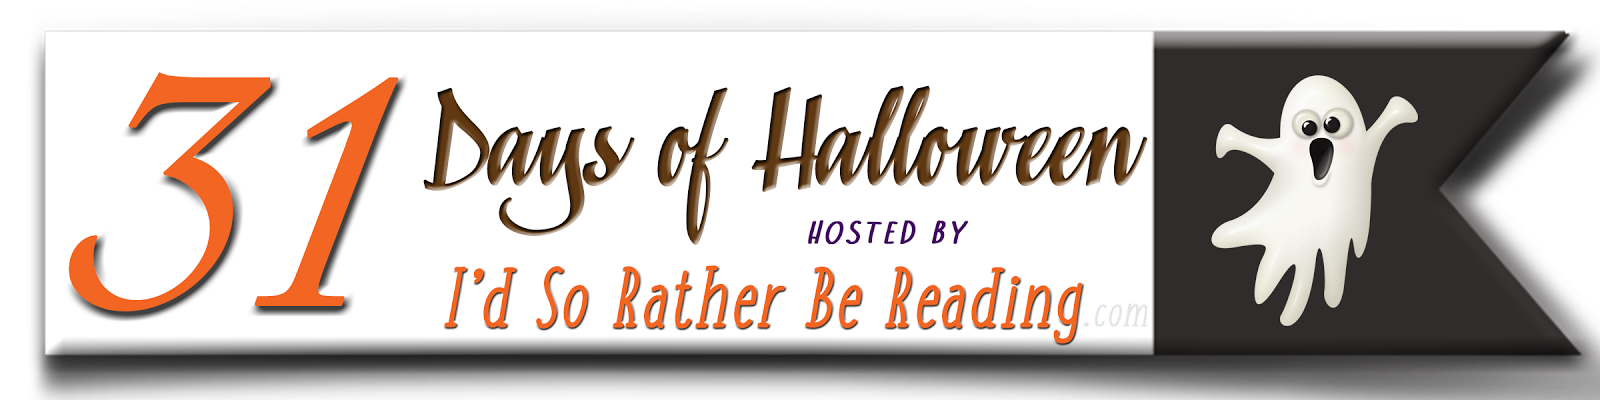 I'd So Rather Be Reading: 31 Days of Halloween!